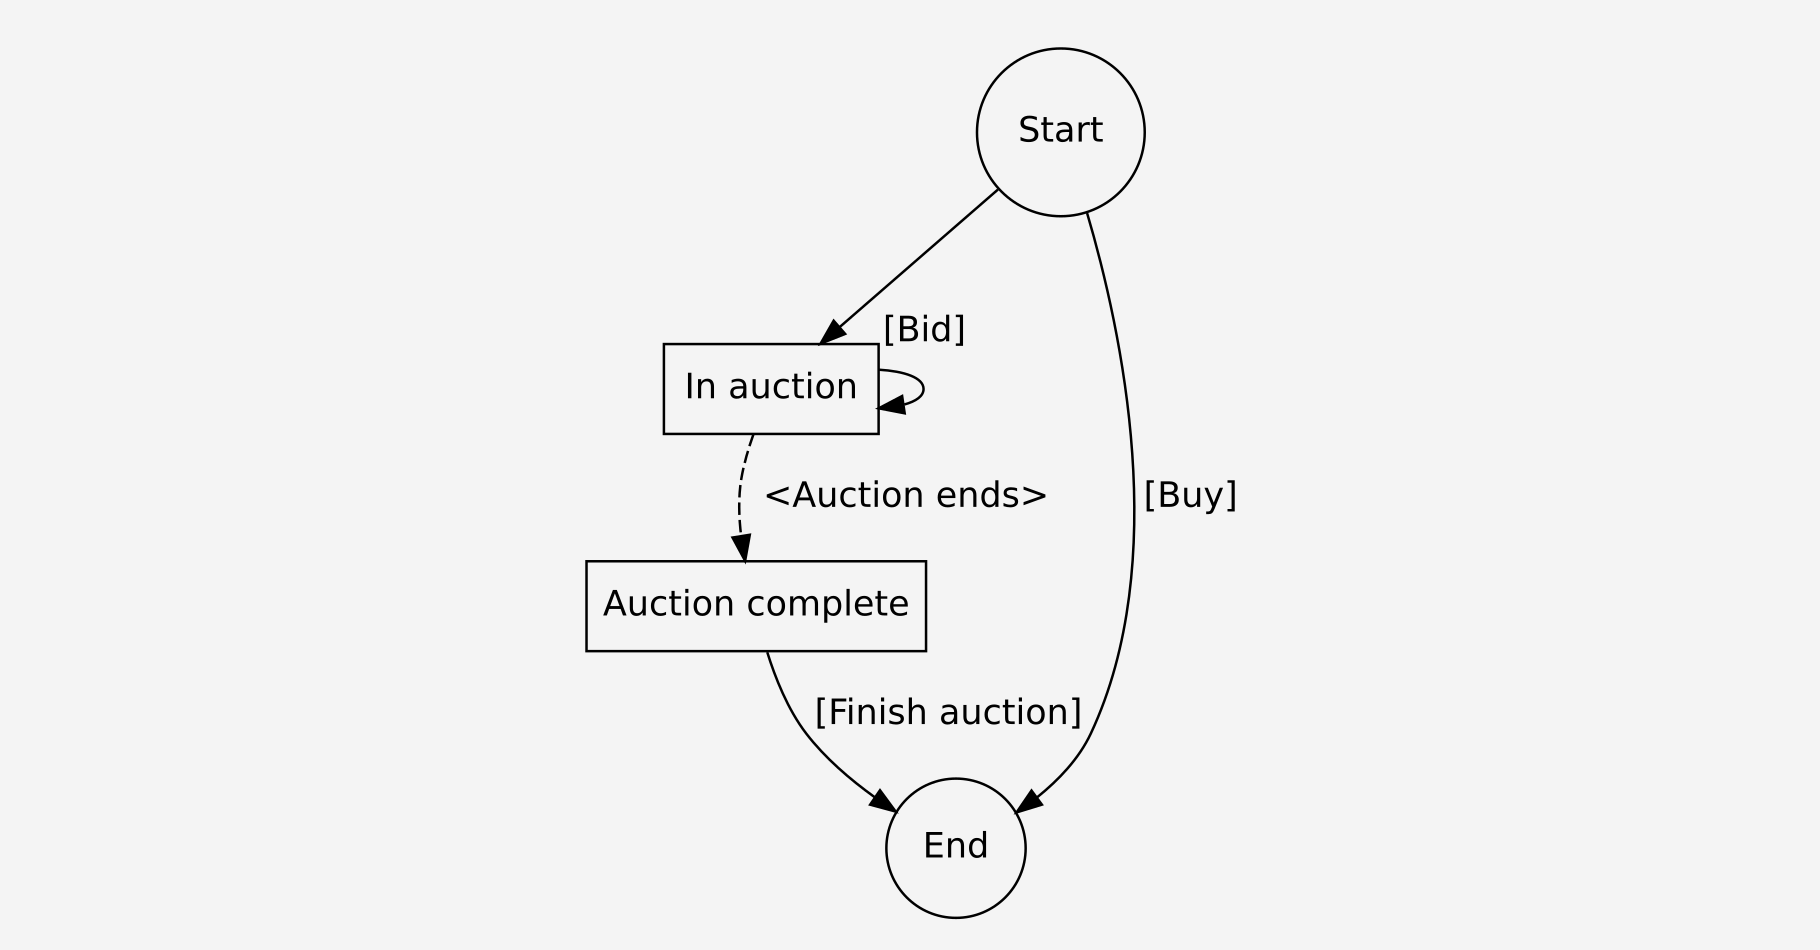 DomainSale process for buyers. Actions carried out by the buyer are wrapped in square brackets. Actions carried out by other entities are wrapped in angular brackets